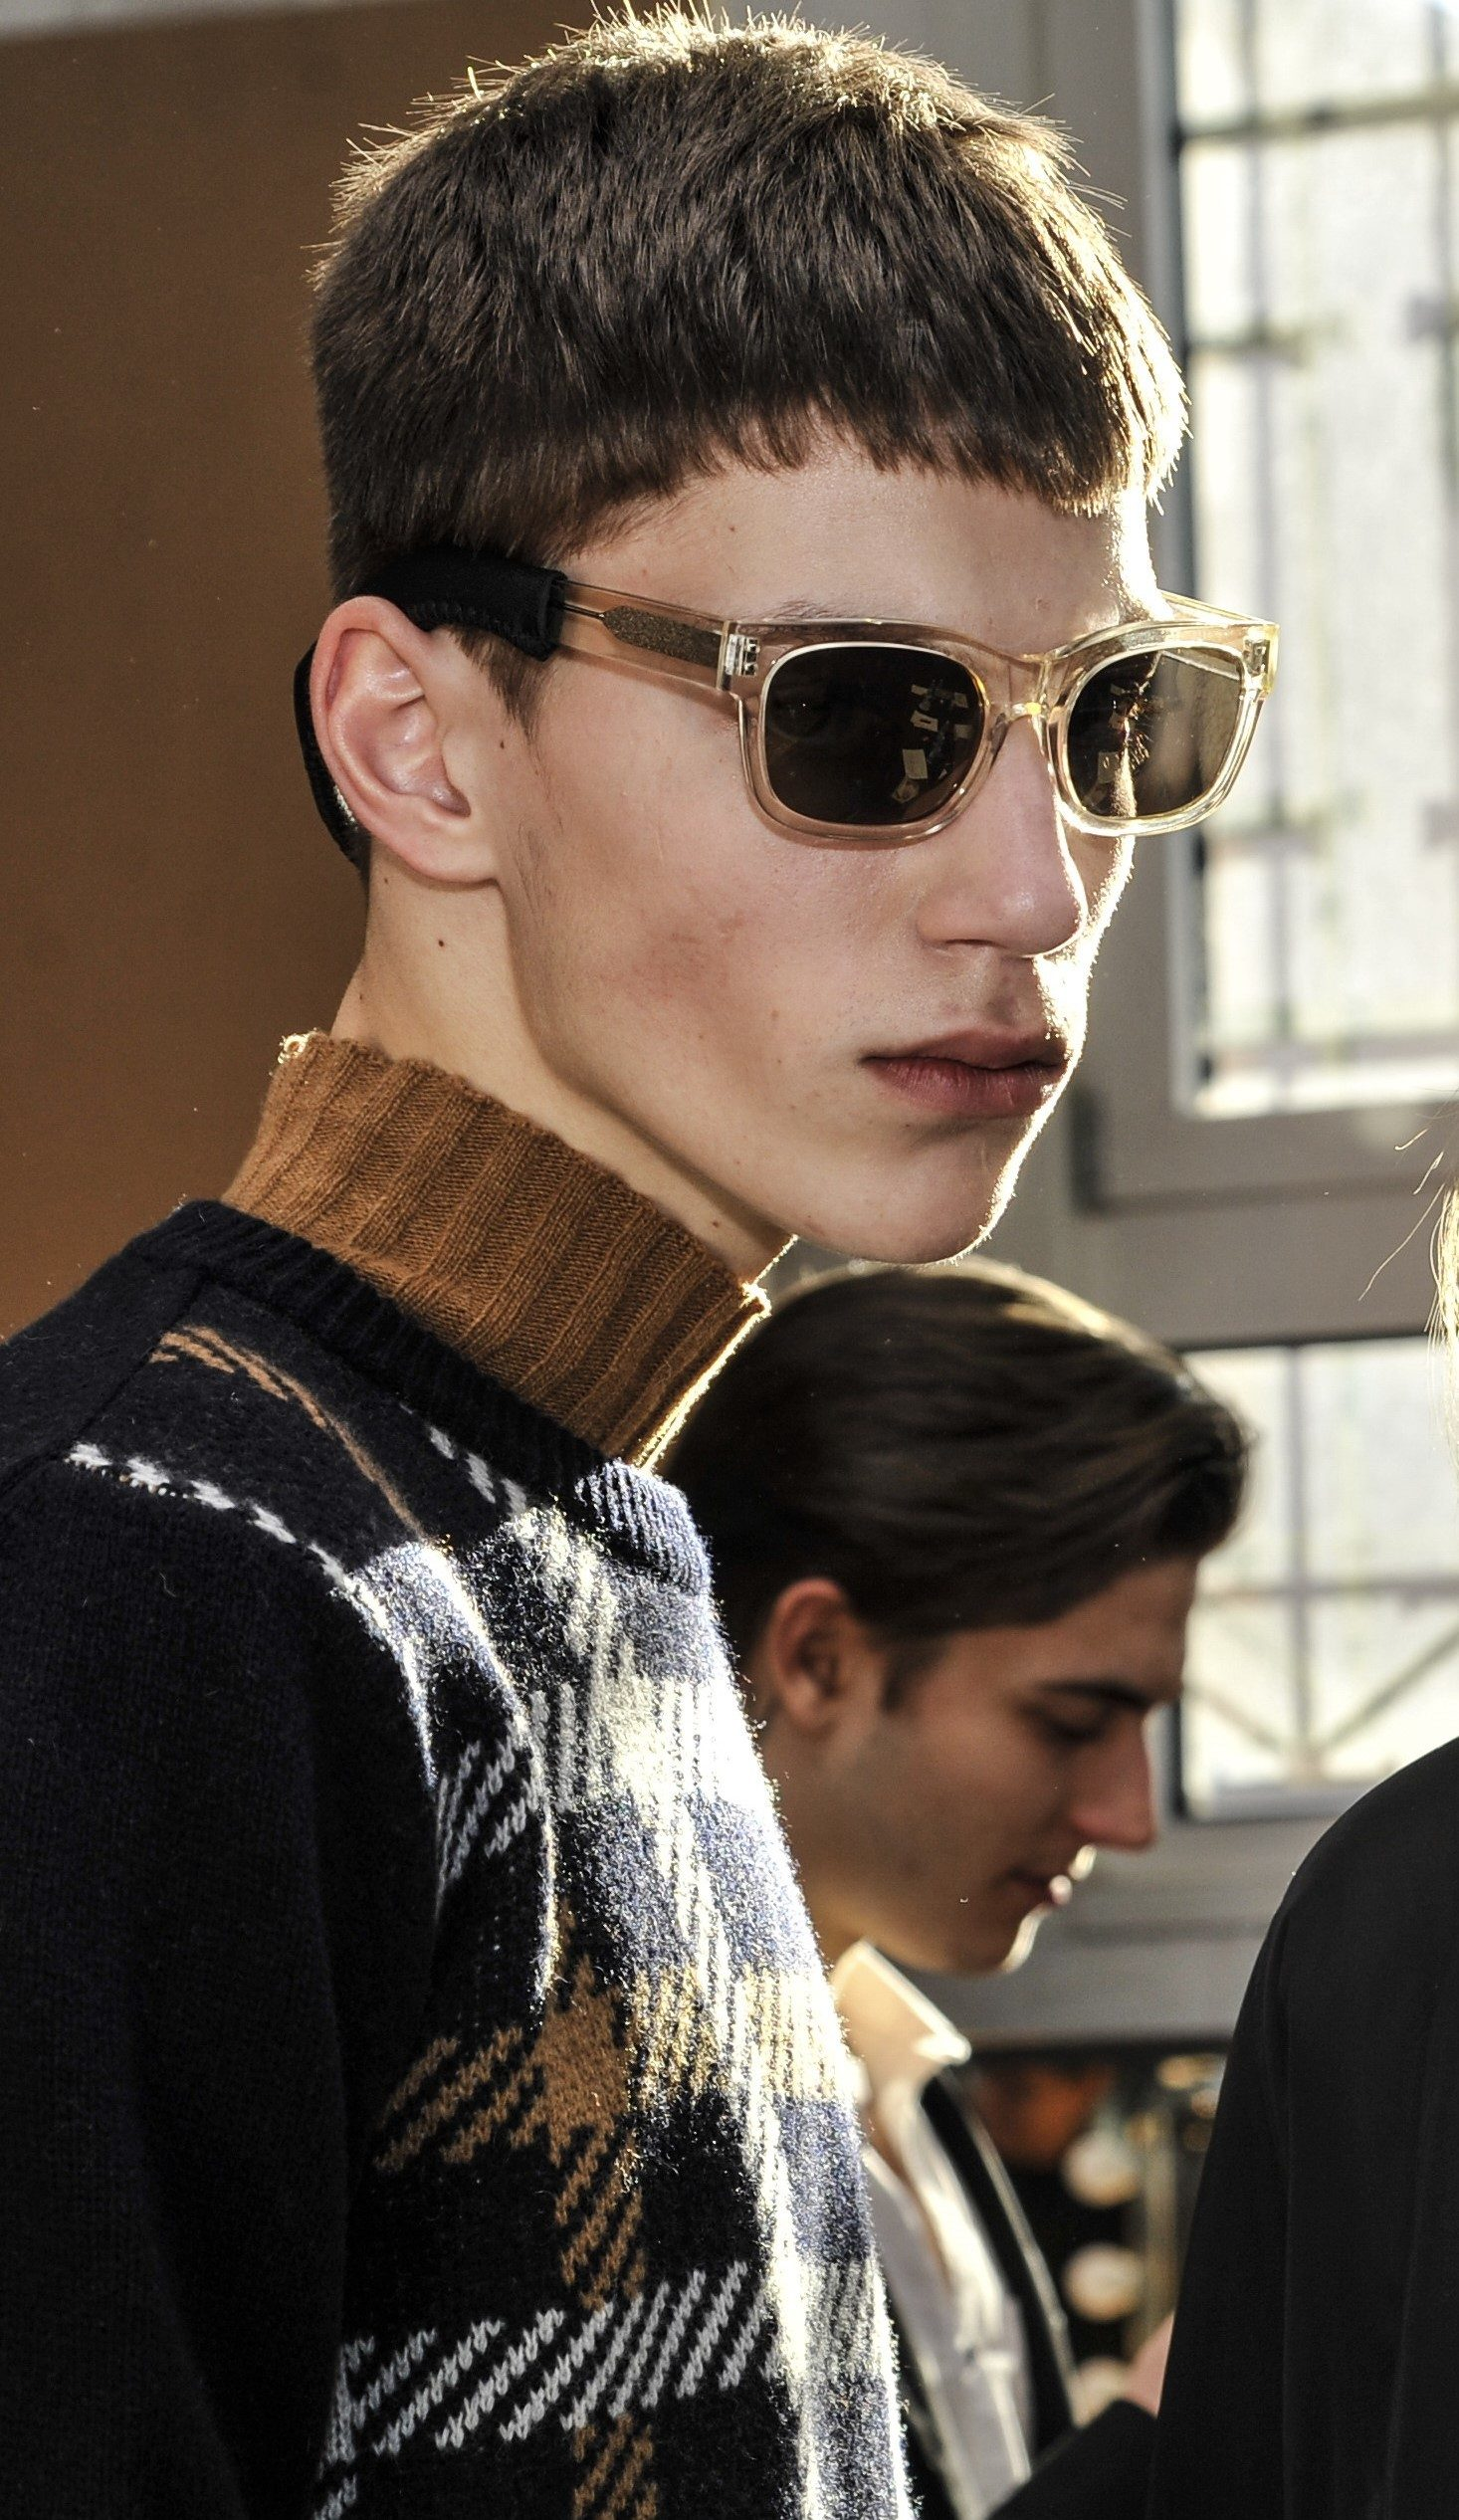 Crop haircut: Brunette male model backstage wearing sunglasses with a french crop haircut